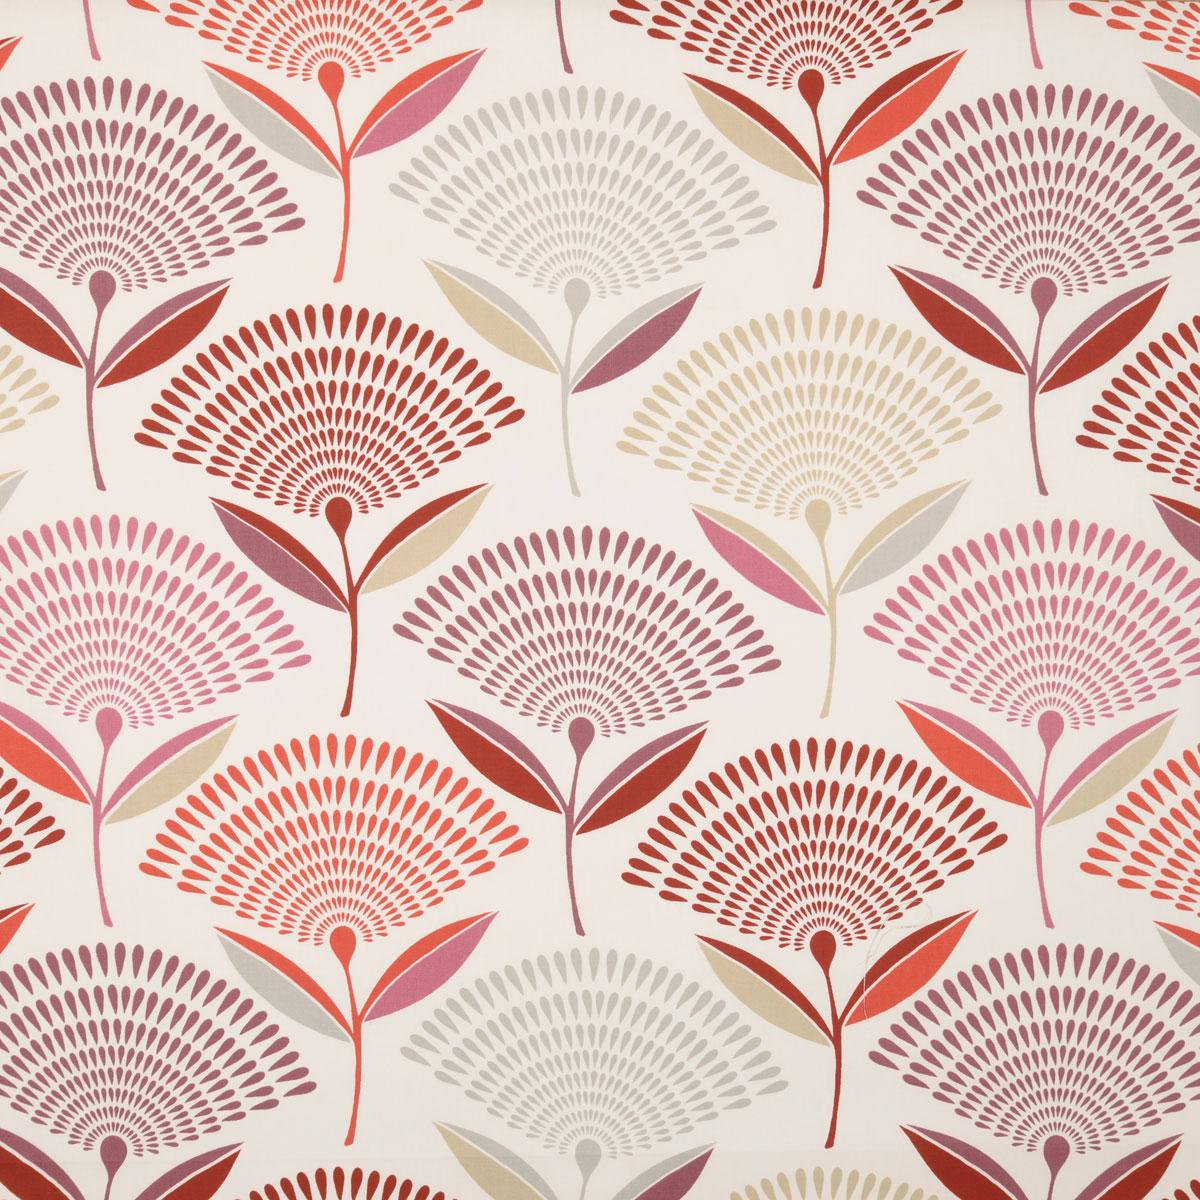 Curtain Fabric Dandelion Curtain Fabric Free Uk Delivery Terrys Fabrics